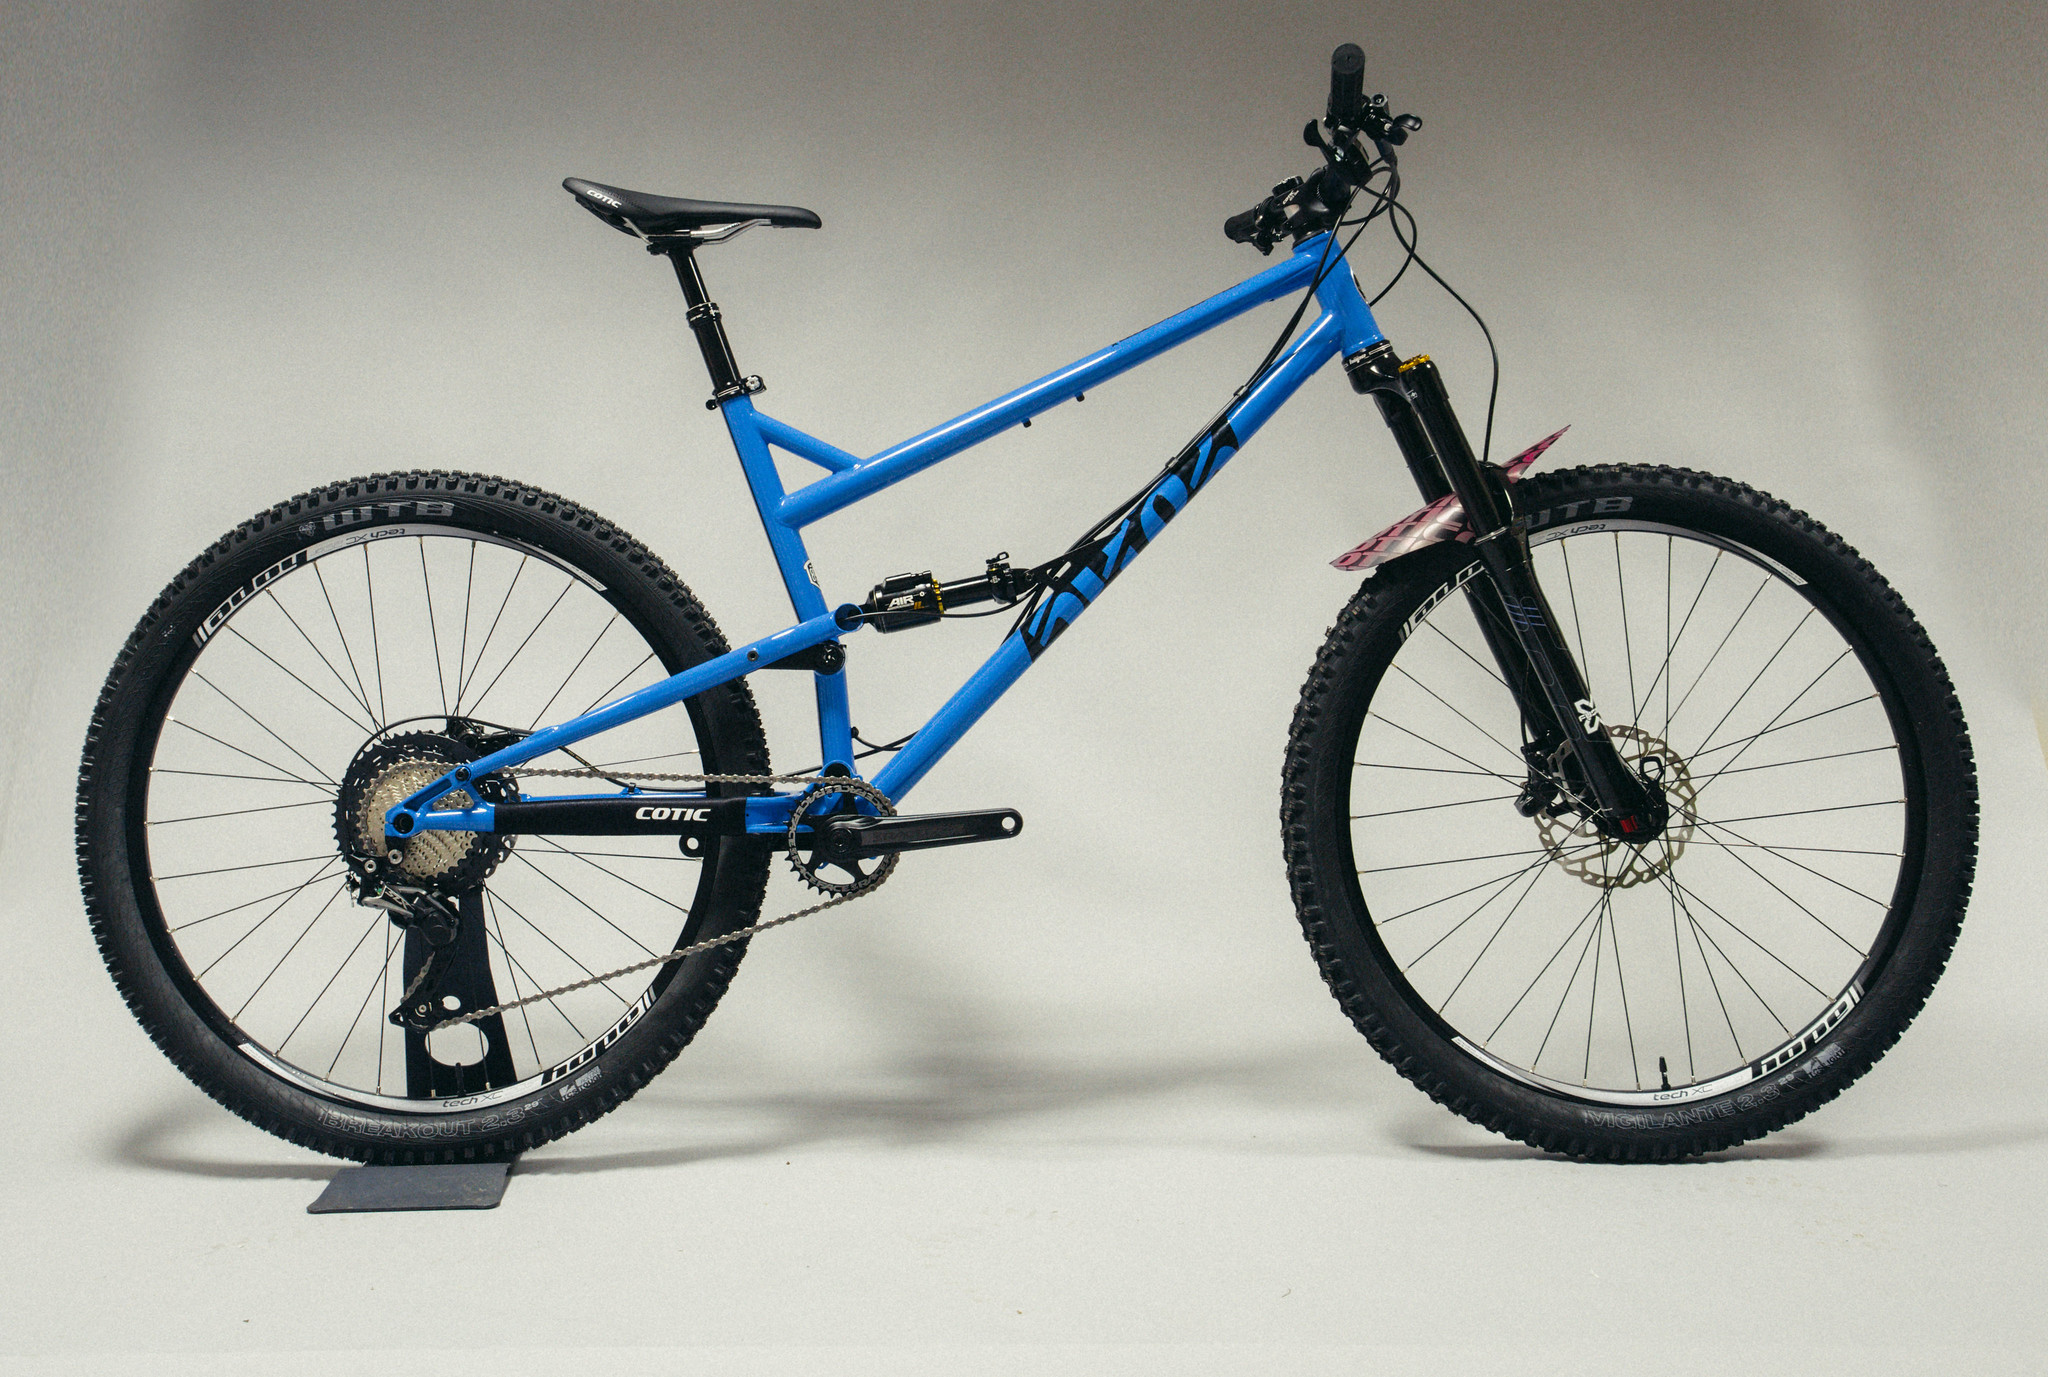 Cotic FlareMAX, Blue/Magenta, Reynolds 853, steel full suspension